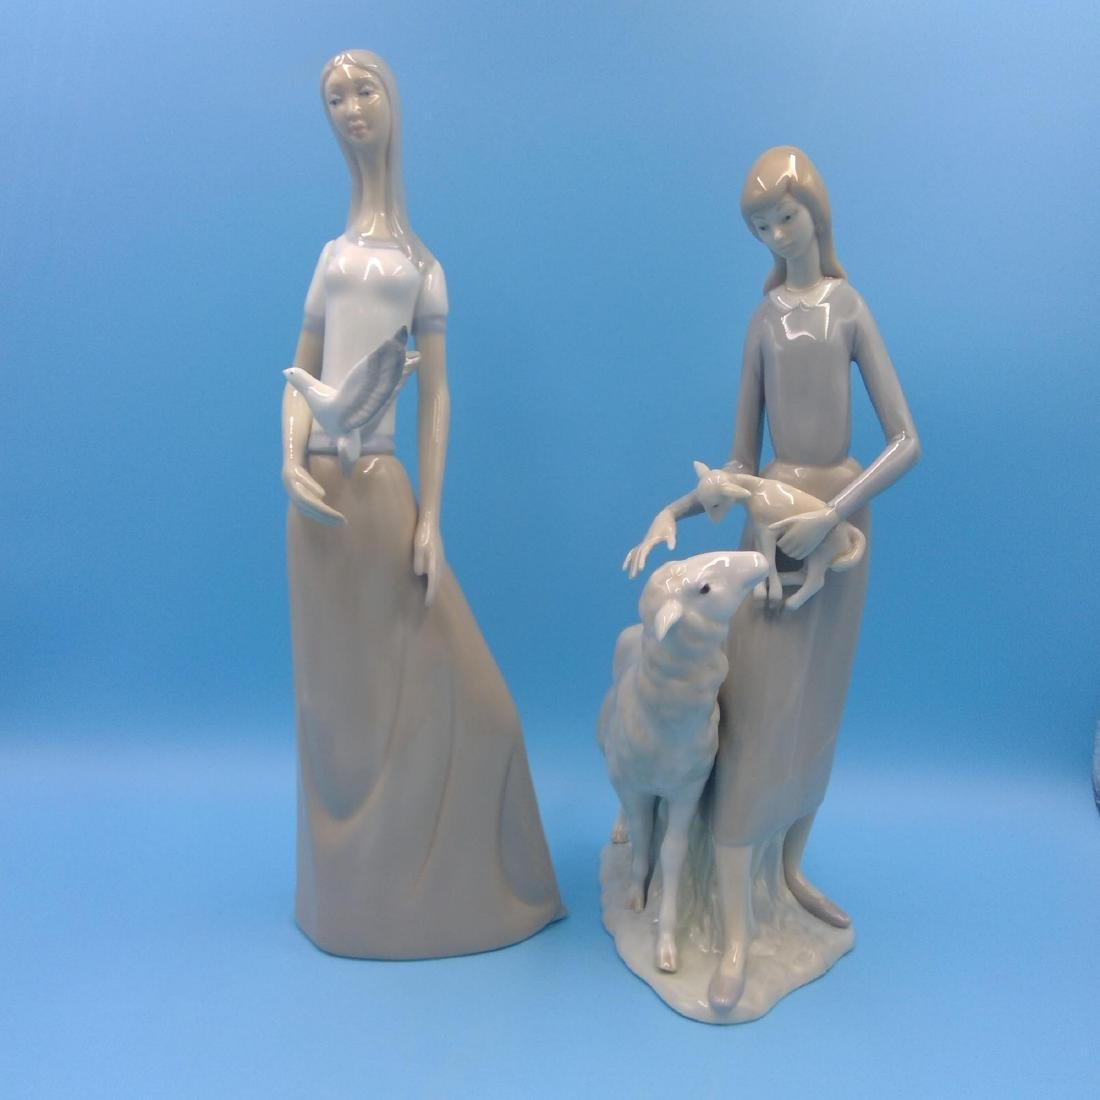 GROUP OF 2 LARGE SPANISH PORCELAIN FIGURINES